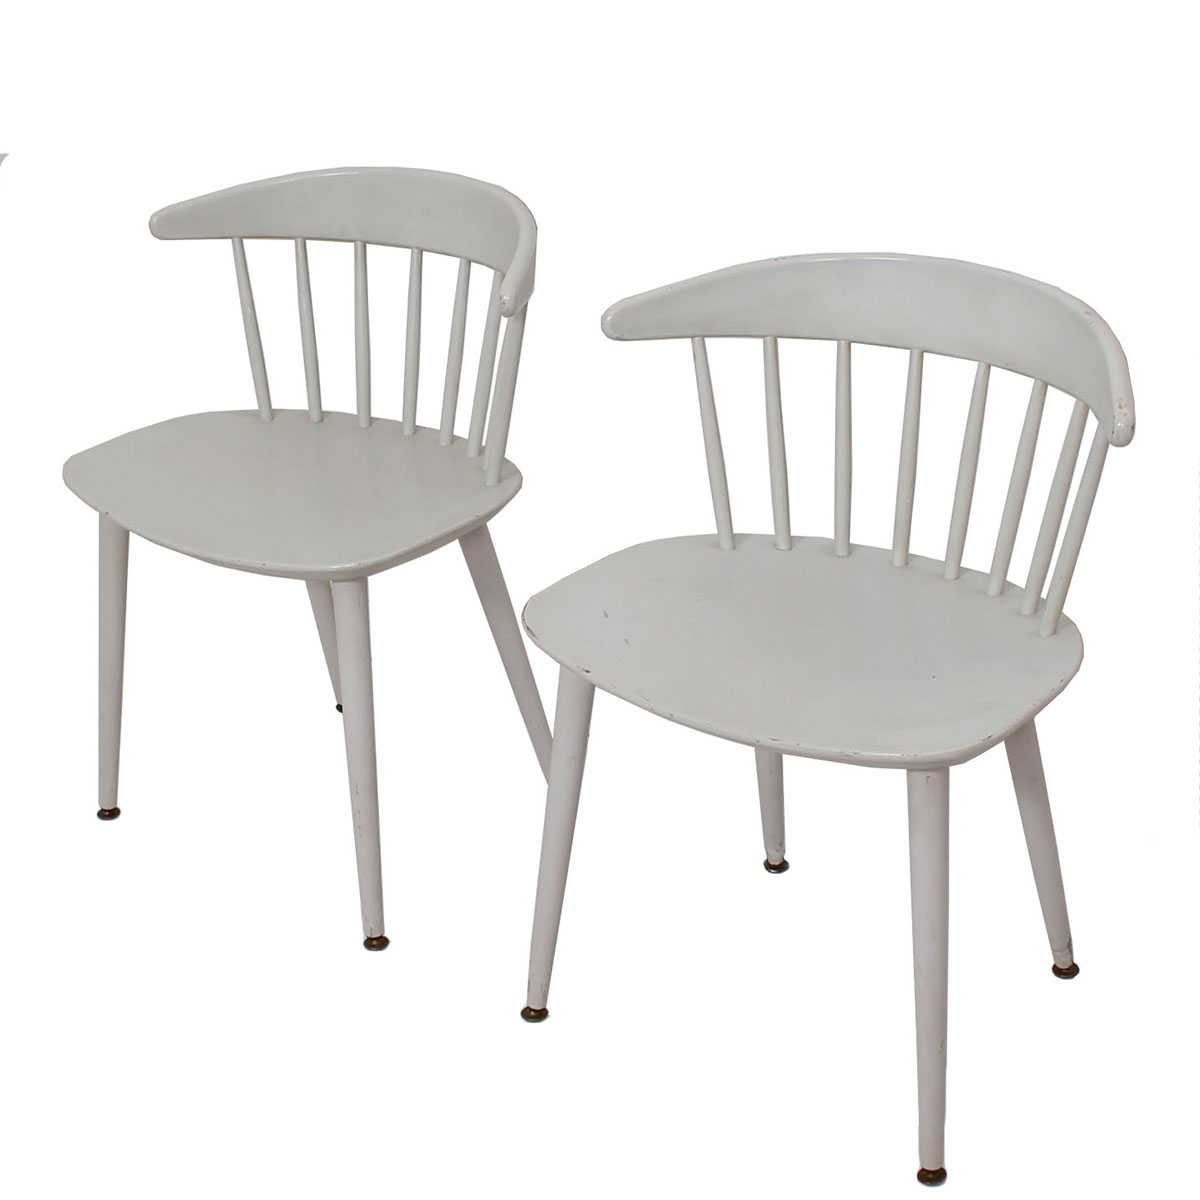 Pair of Ejvind A. Johansson for FDB Danish Chairs